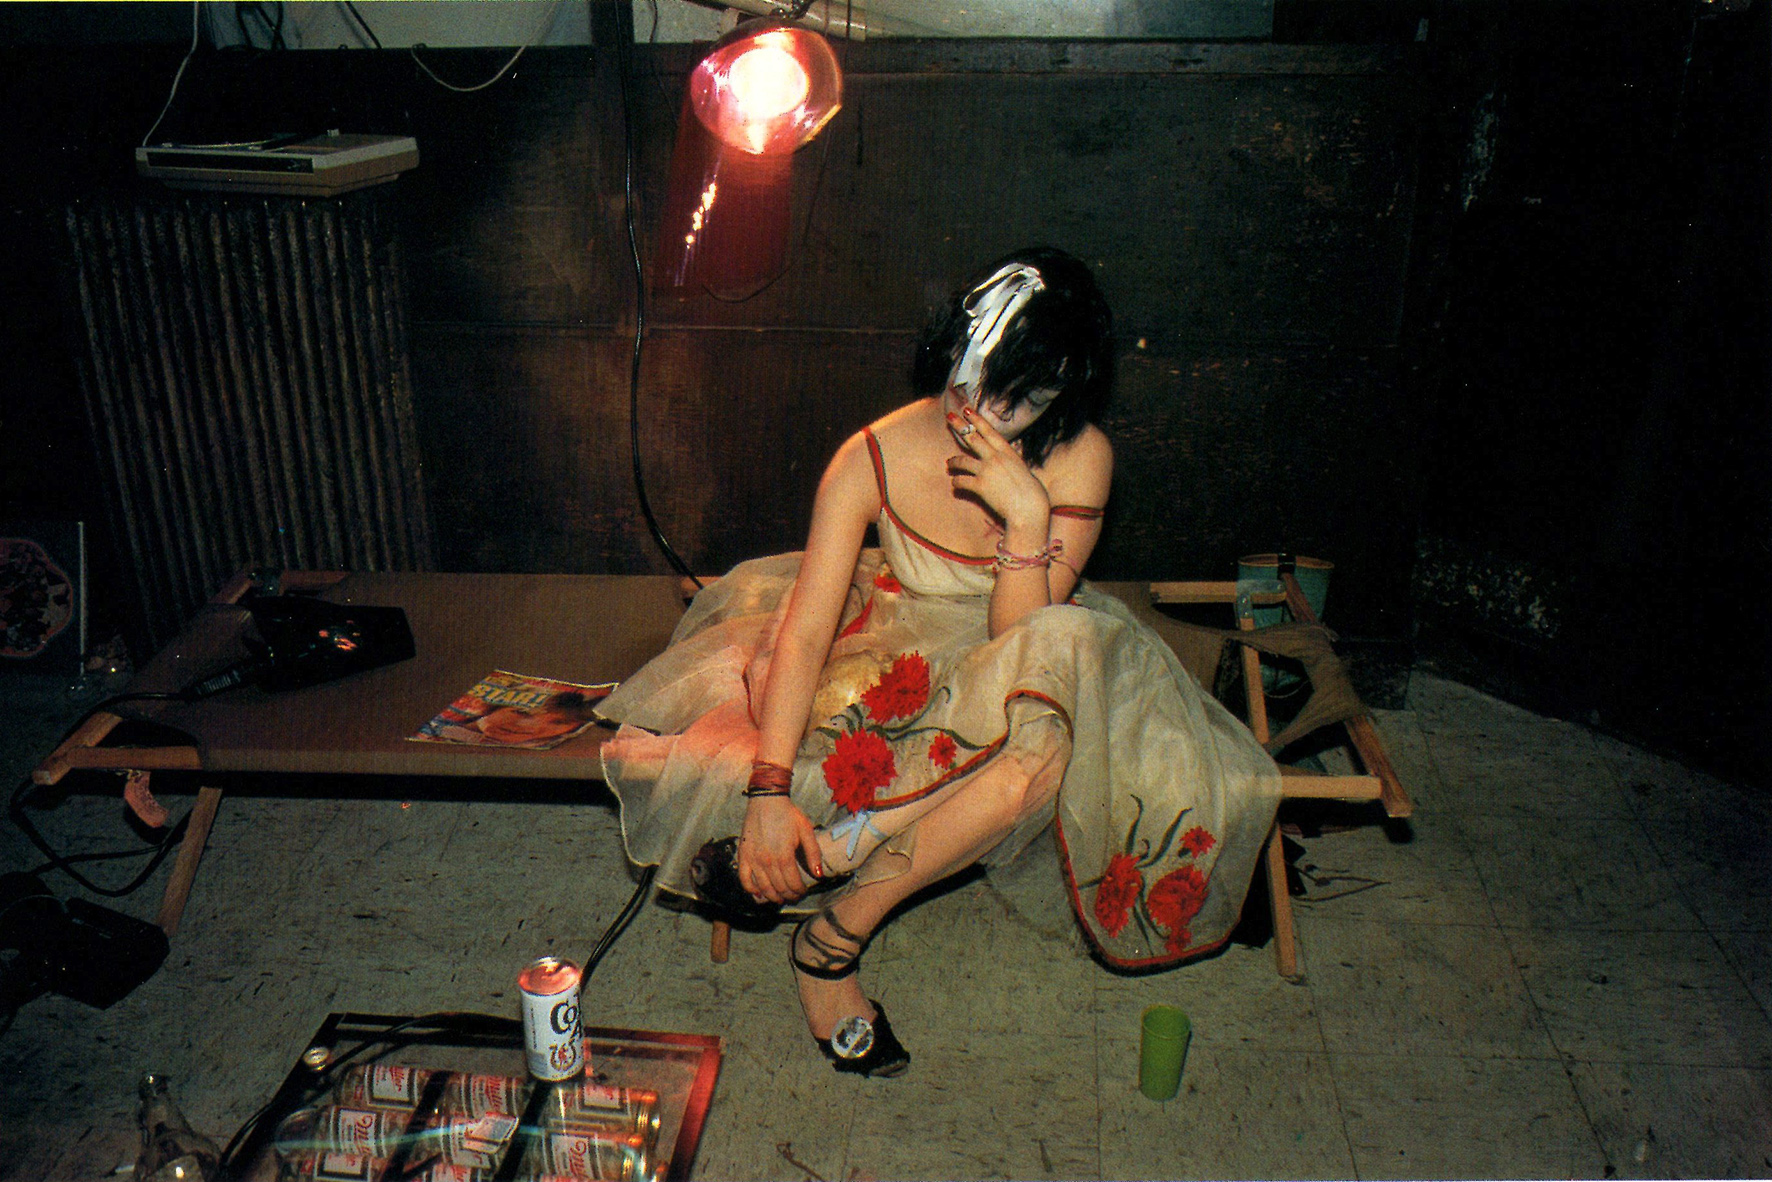 12_GOLDIN__Trixie_on_the_cot__NYC_1979Nan_Goldin_courtesy_the_artist_and_Guido_Costa_Projects_Torino